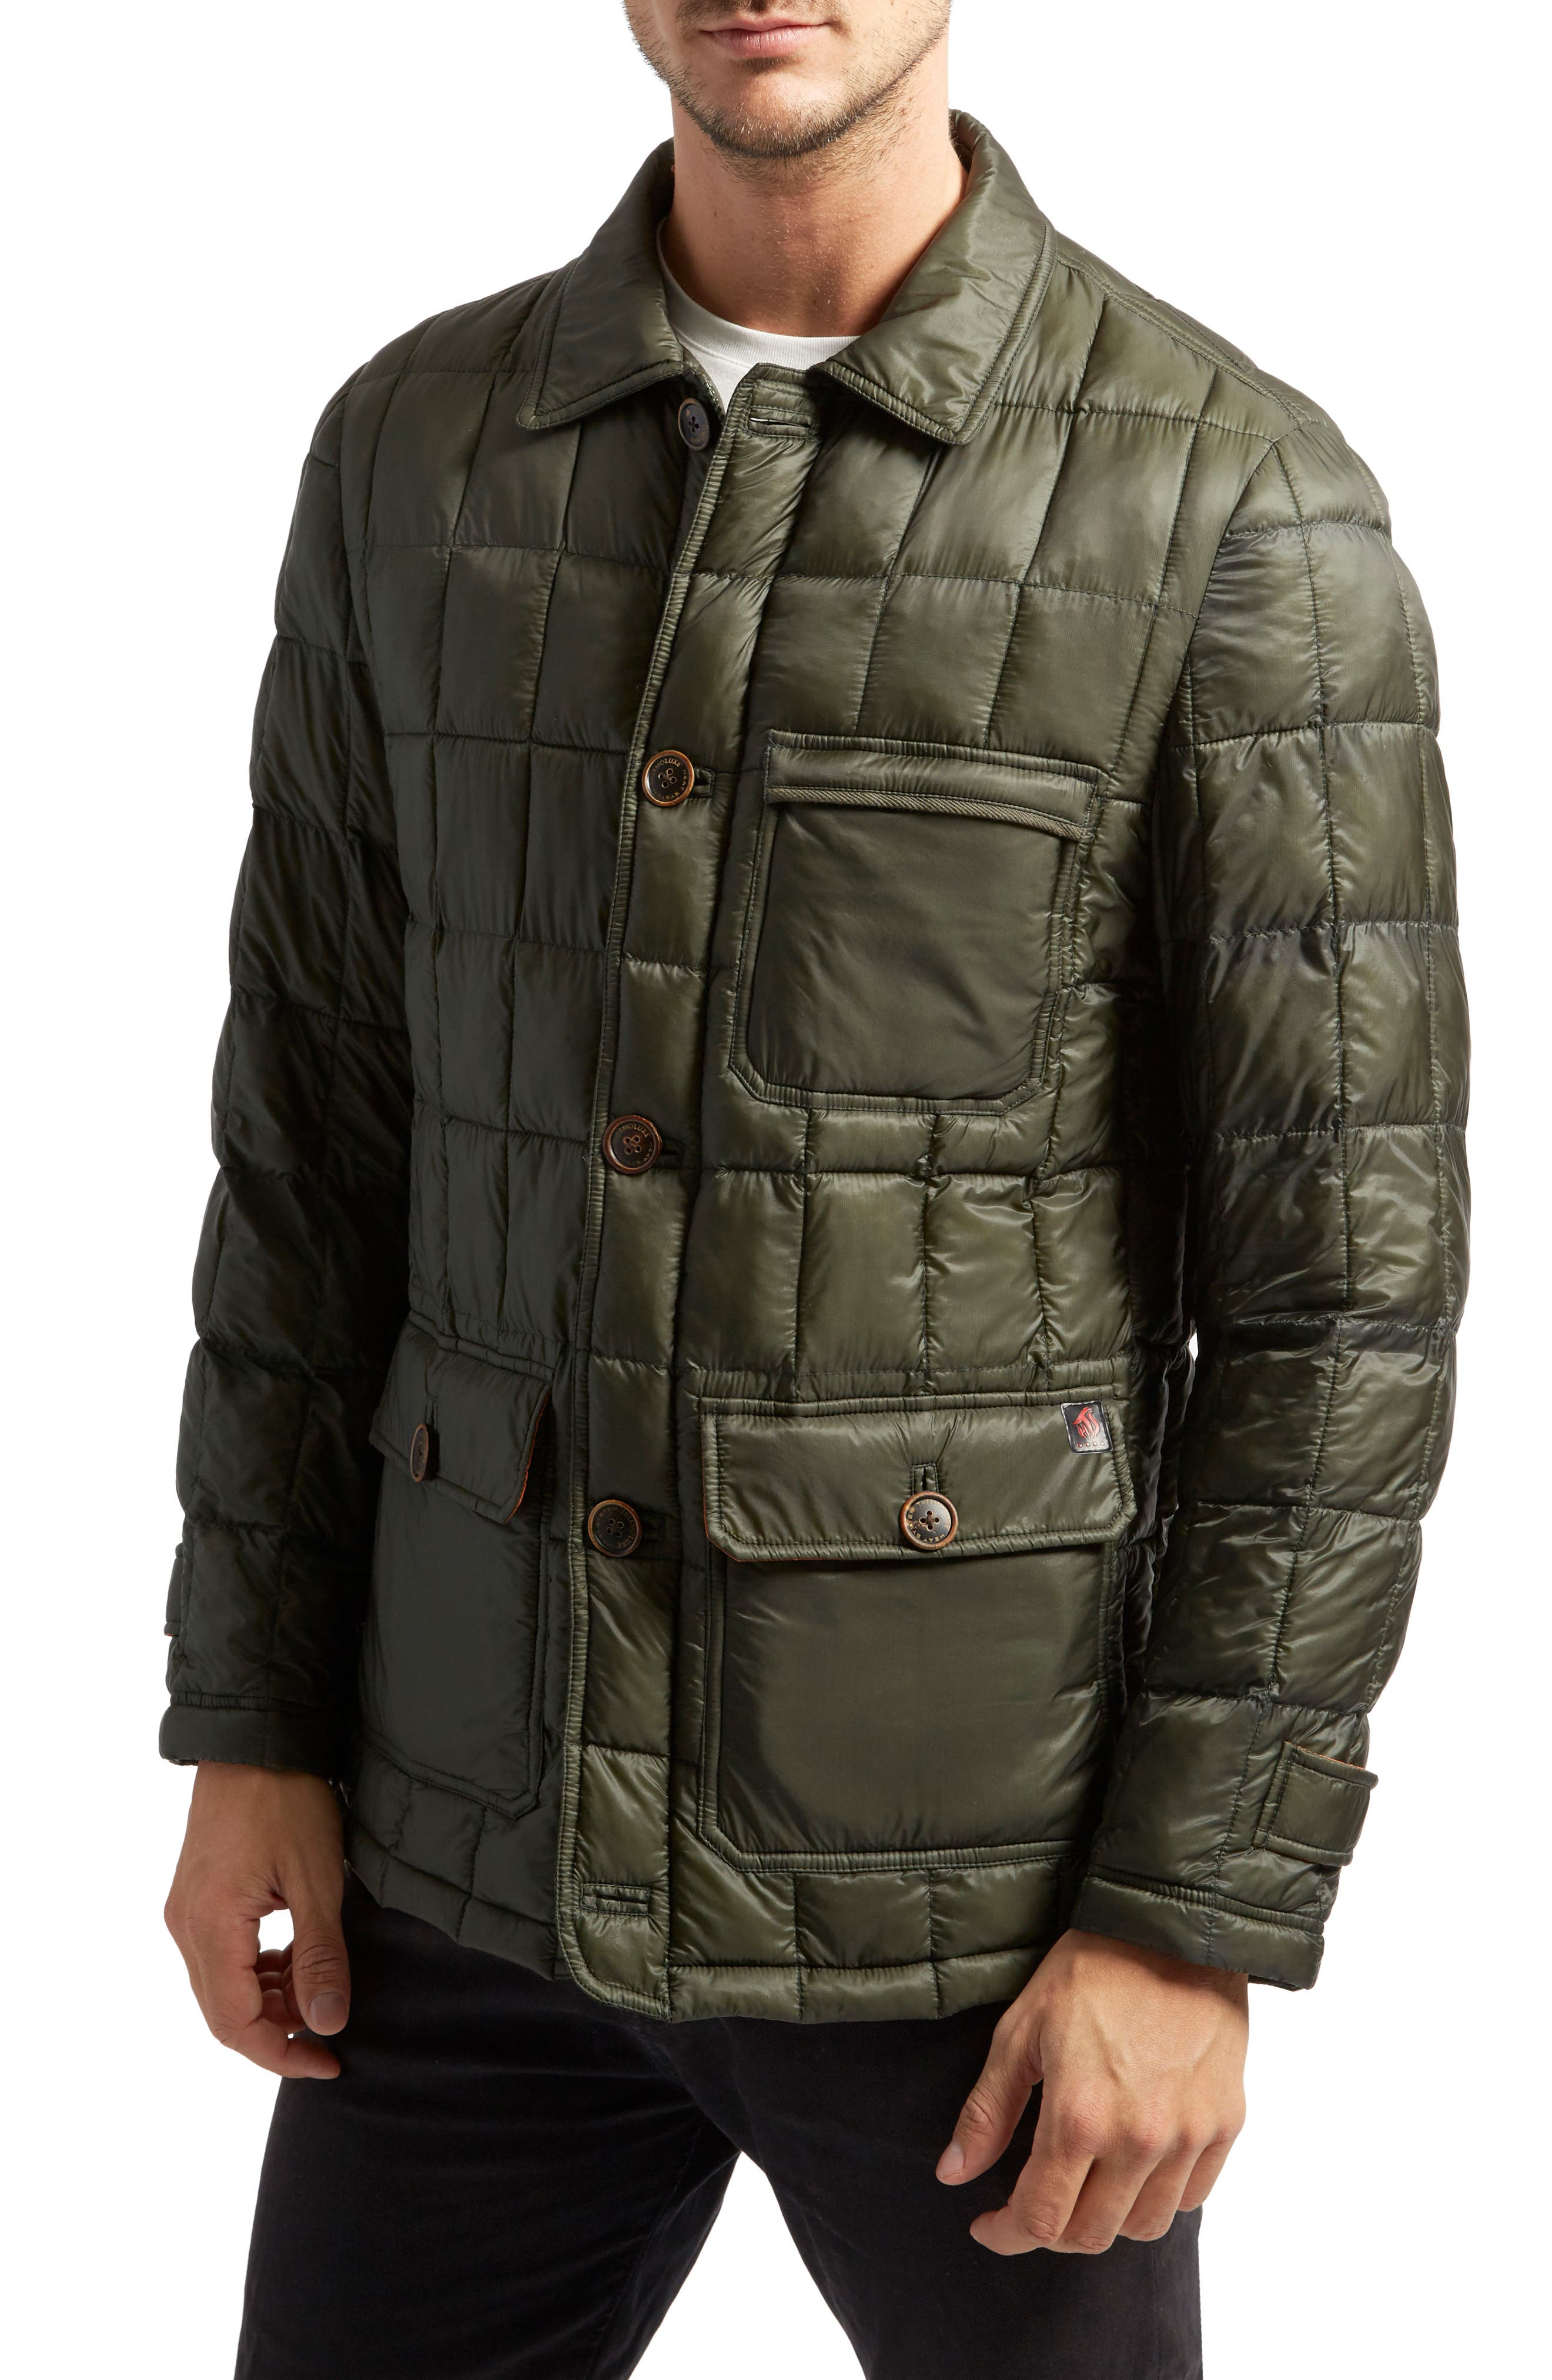 Butler Heat System Quilted Walking Jacket,                             Main thumbnail 1, color,                             340